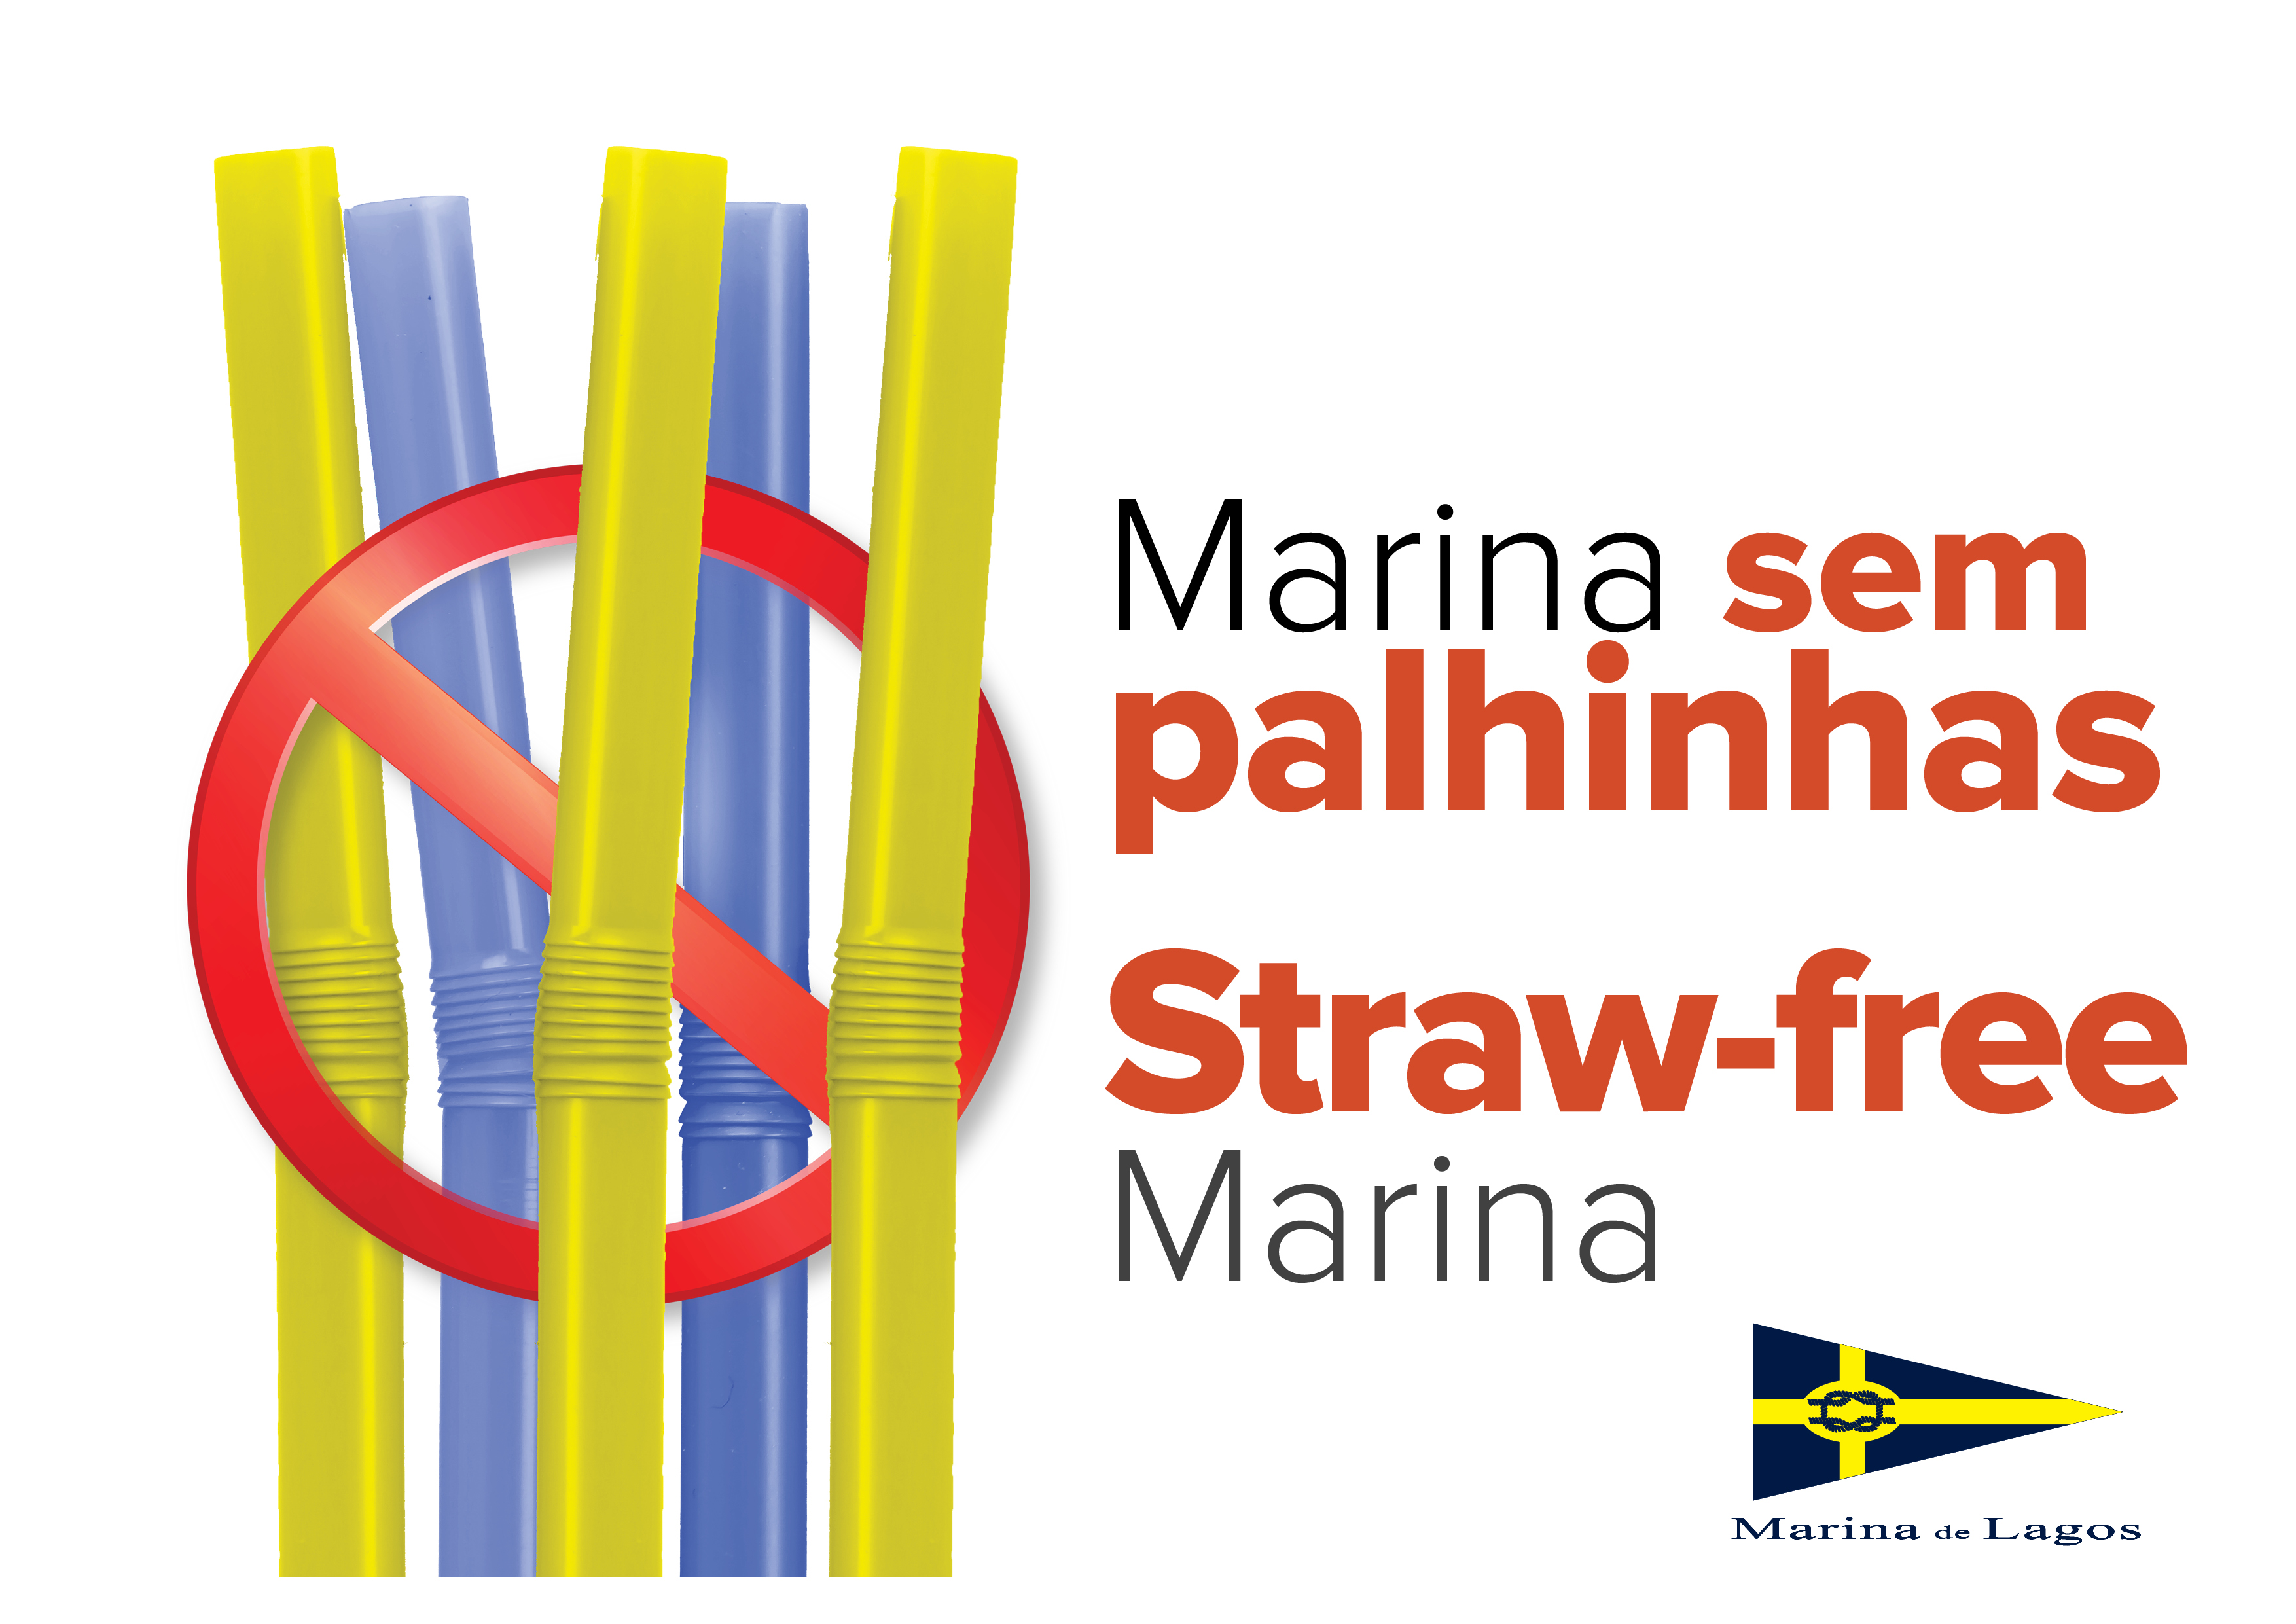 Marina de Lagos aims to pioneer as the first plastic straw-free marina in the world